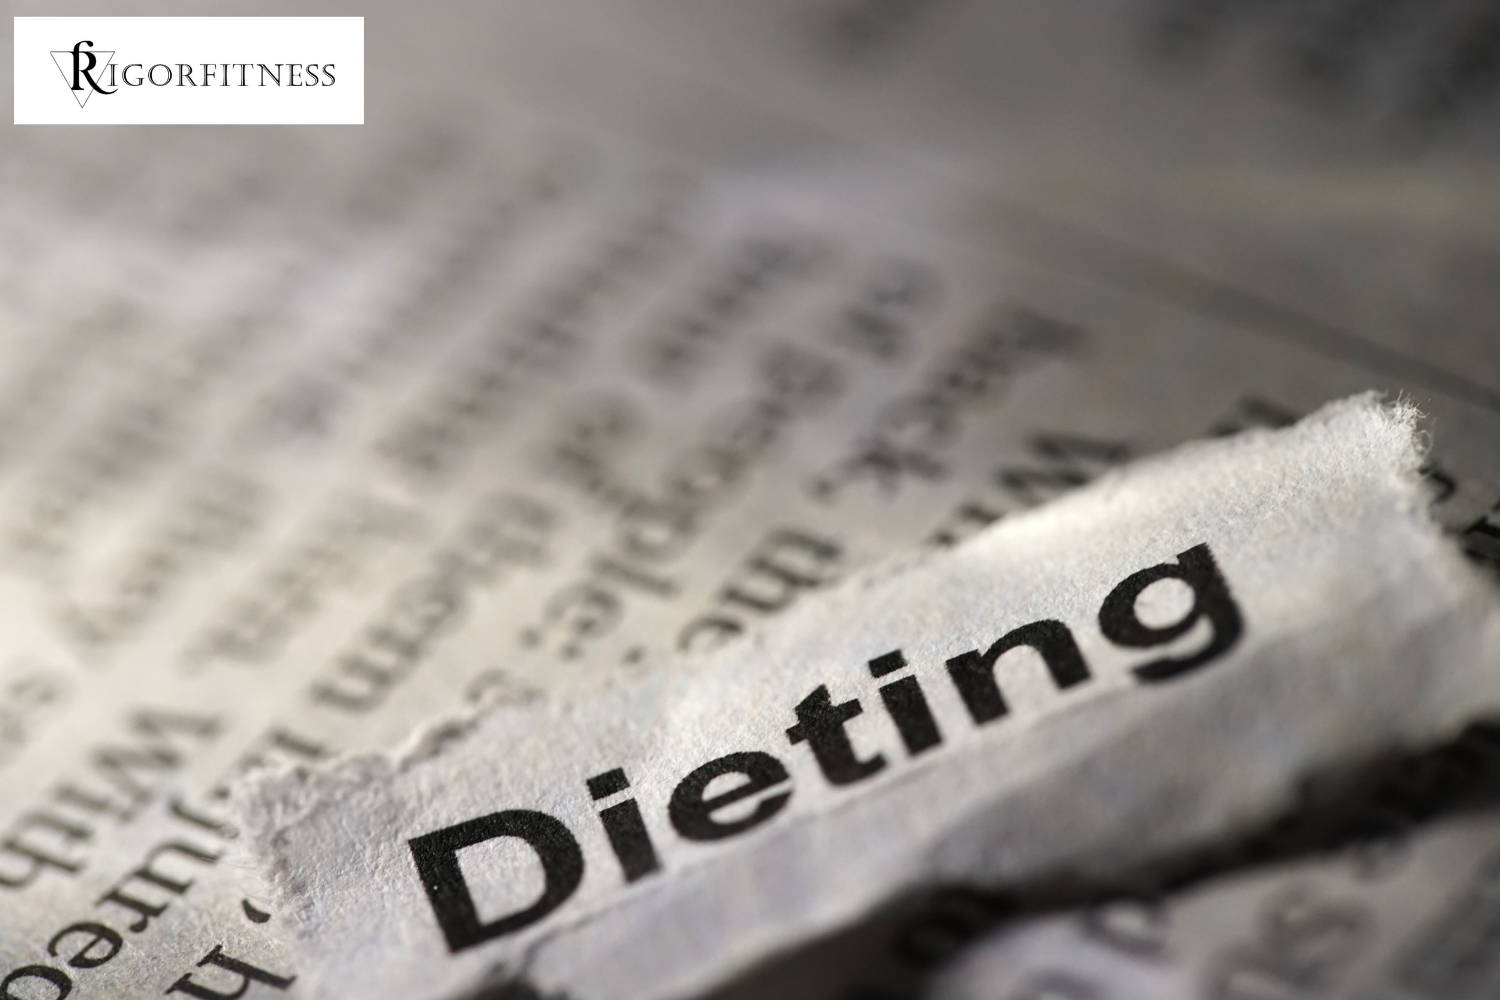 Diet and weight regain: What's the connection?